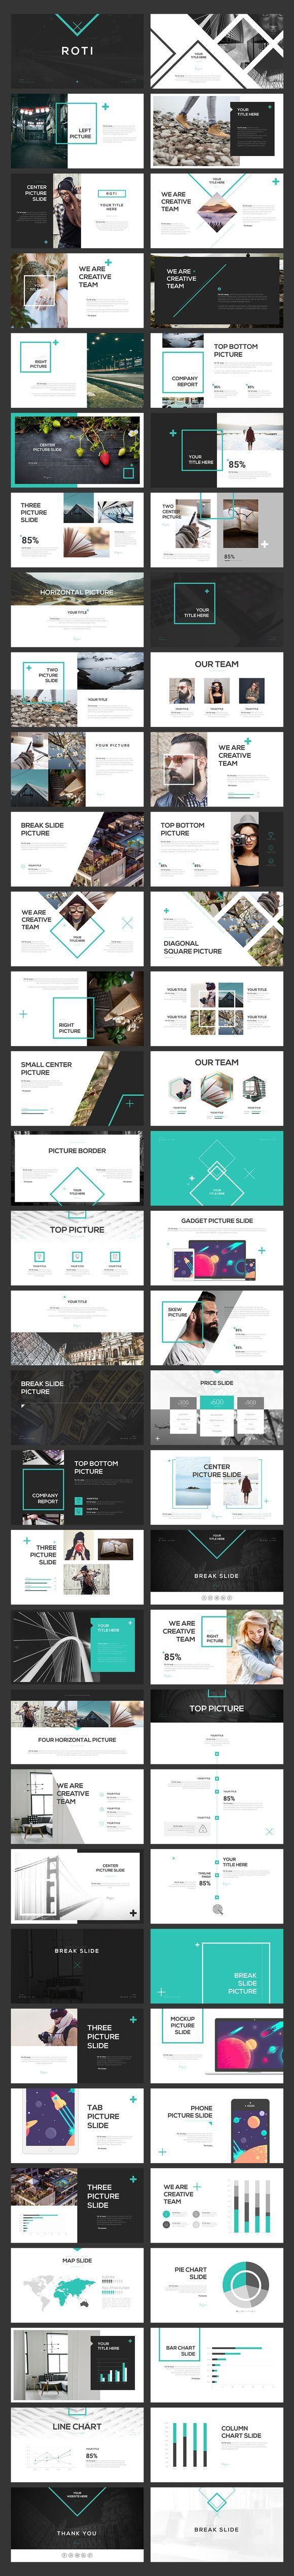 ROTI PowerPoint Template – Presentations – 6 – #portfolio #PowerPoint Template # Presentations #ROTI